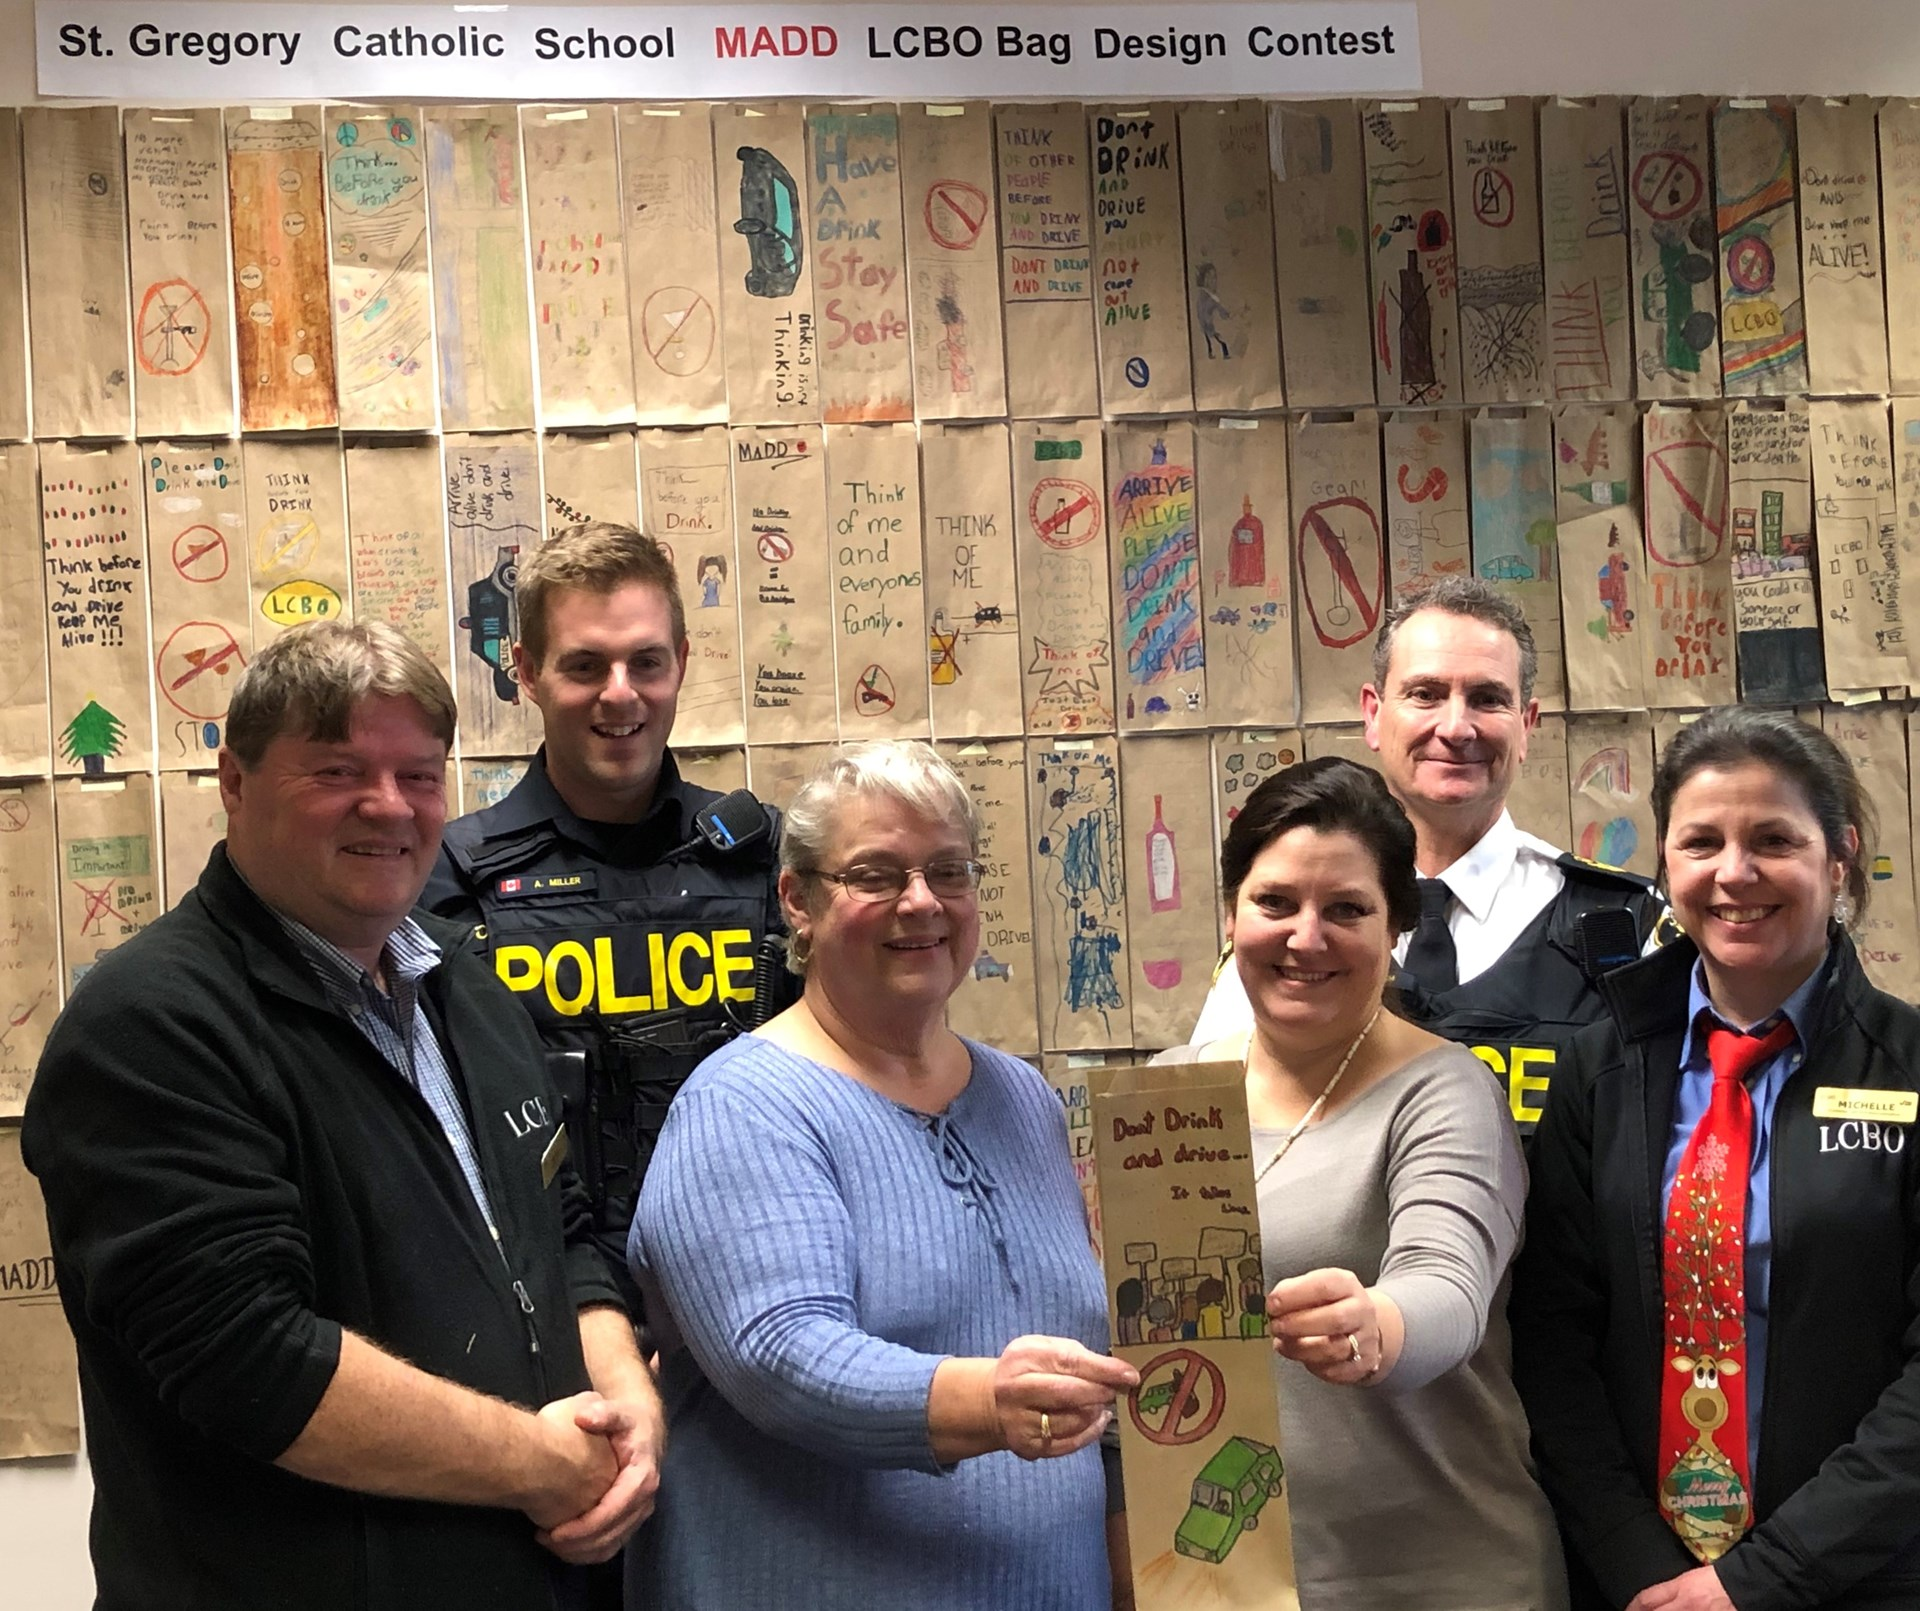 OPP and LCBO and school staff with winning submission